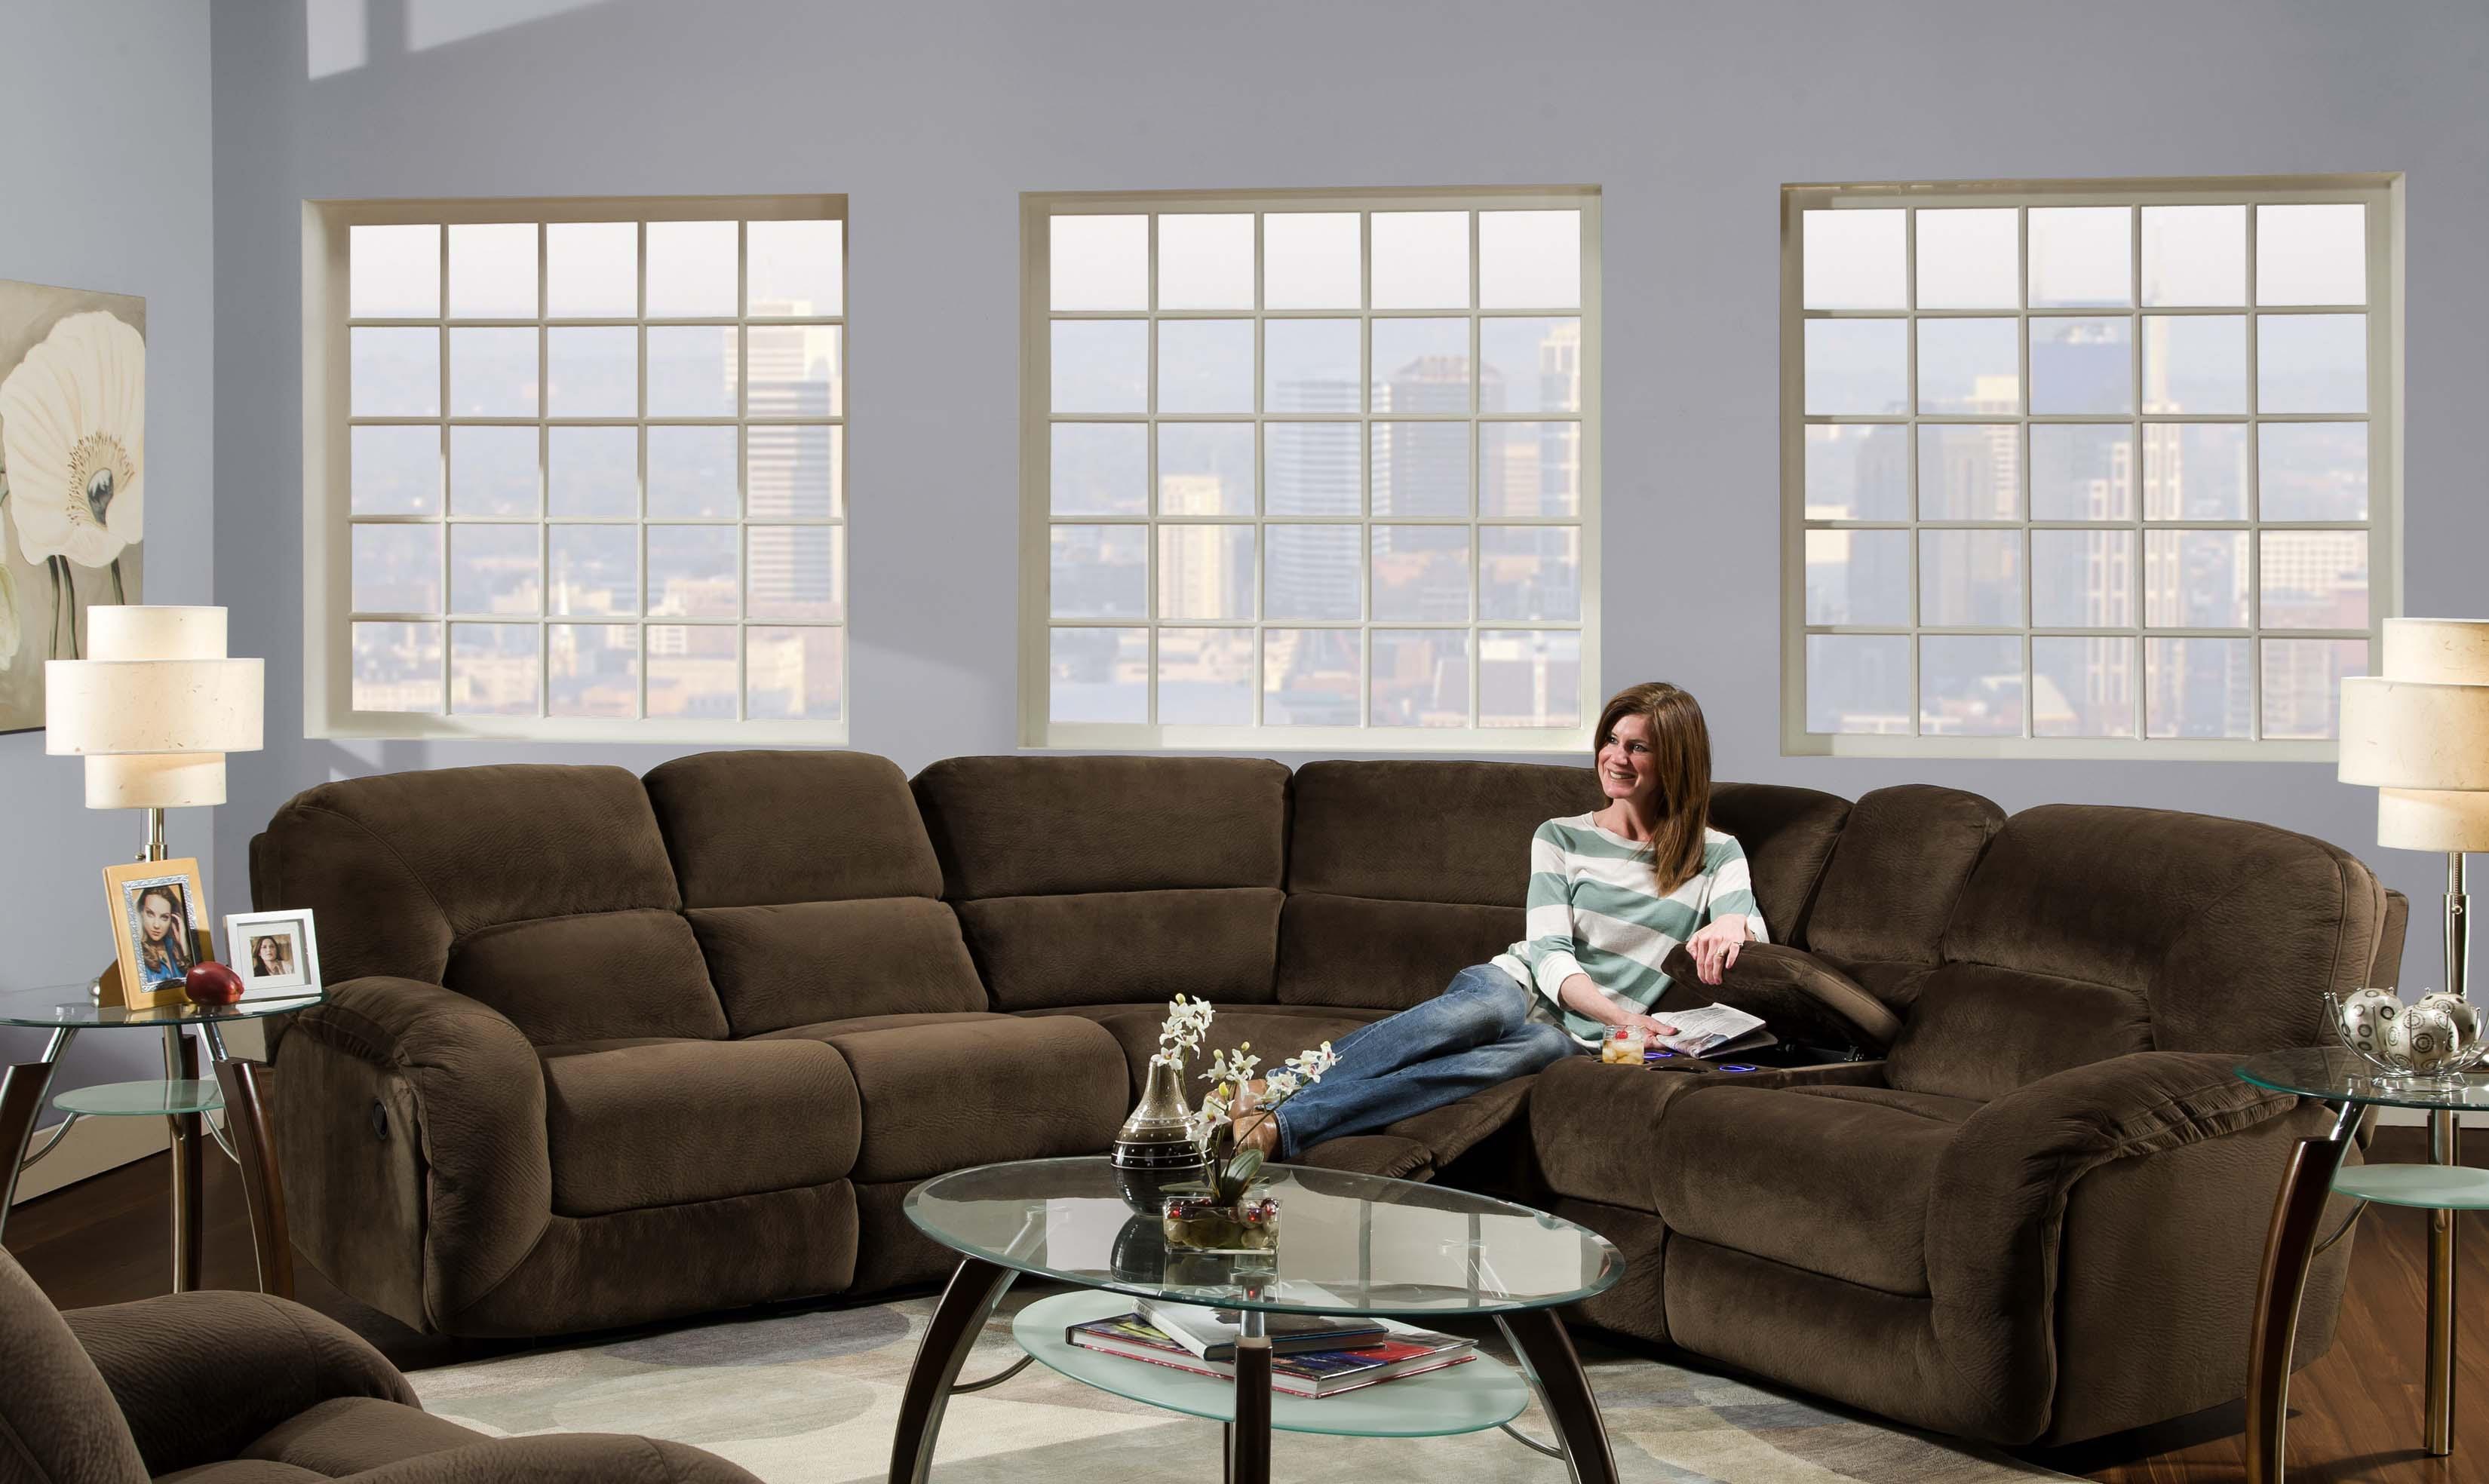 3 Piece Sectional Recliner 3 Piece Sectional Sleeper Sofa